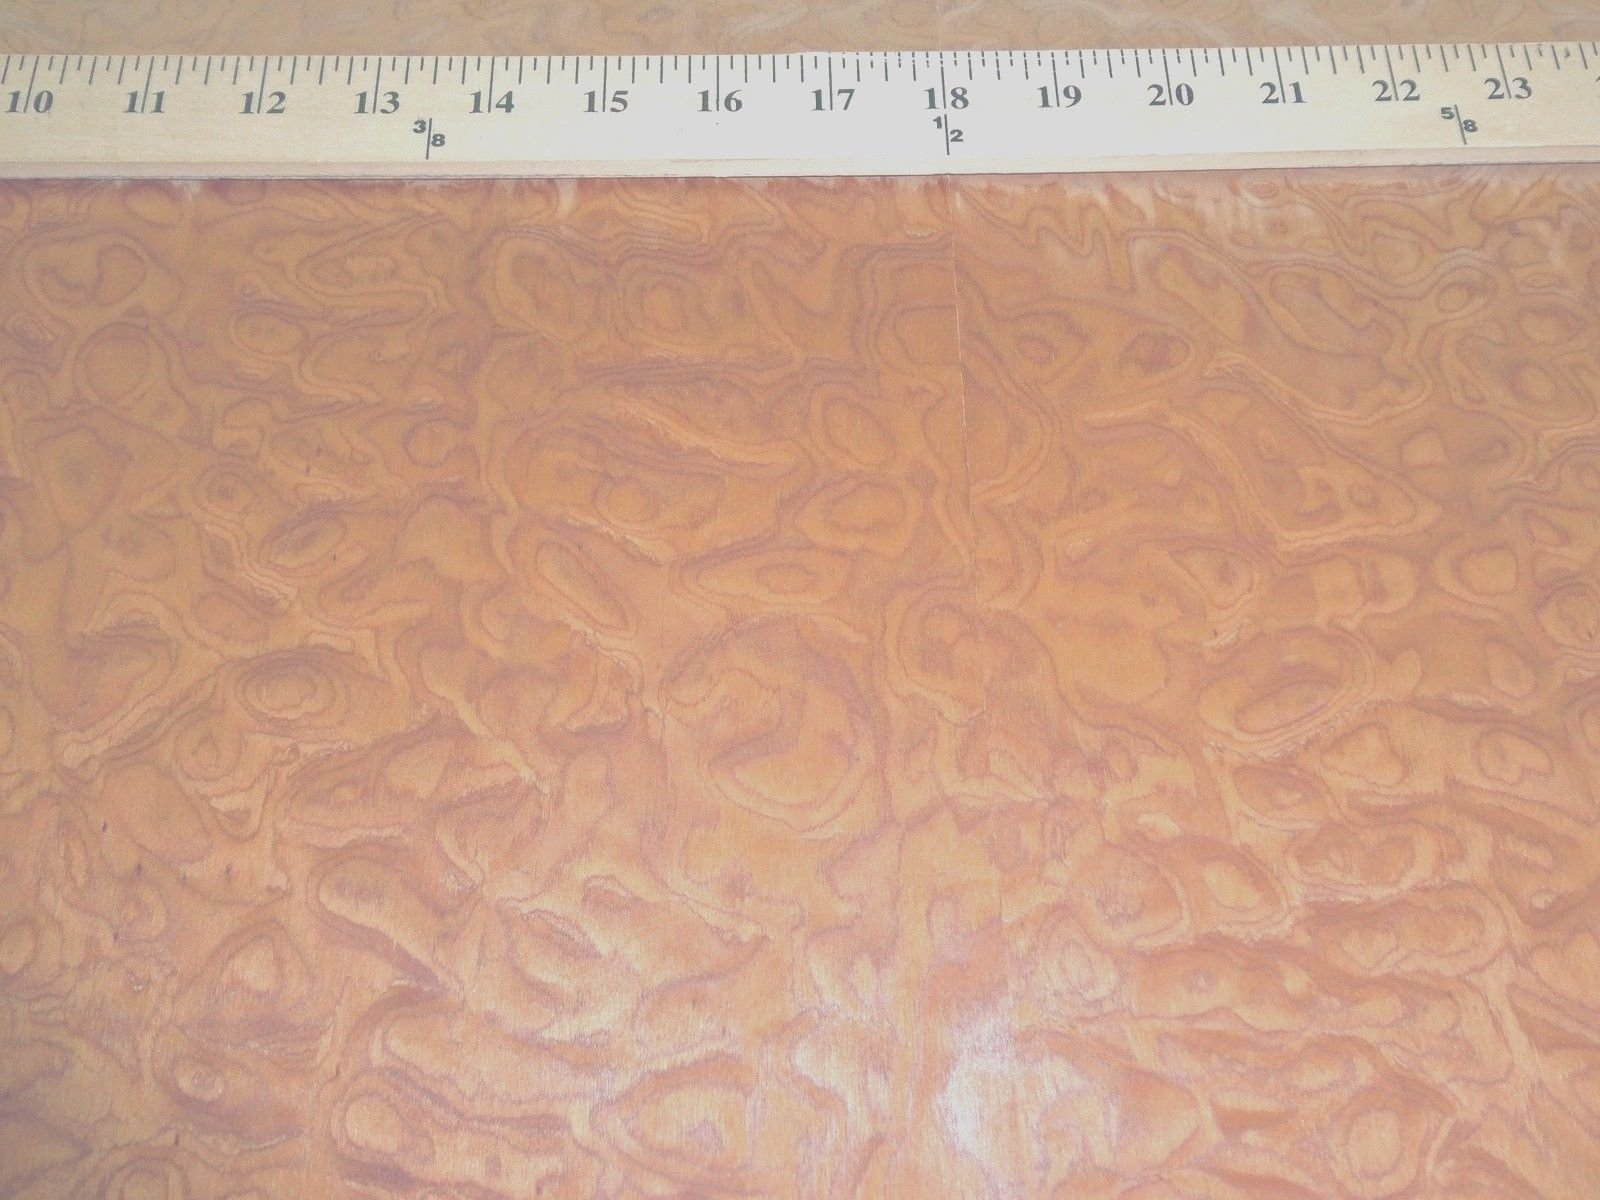 Sapele Pommele Figured Quilted Burl composite wood veneer 24'' x 96'' raw 1/42''